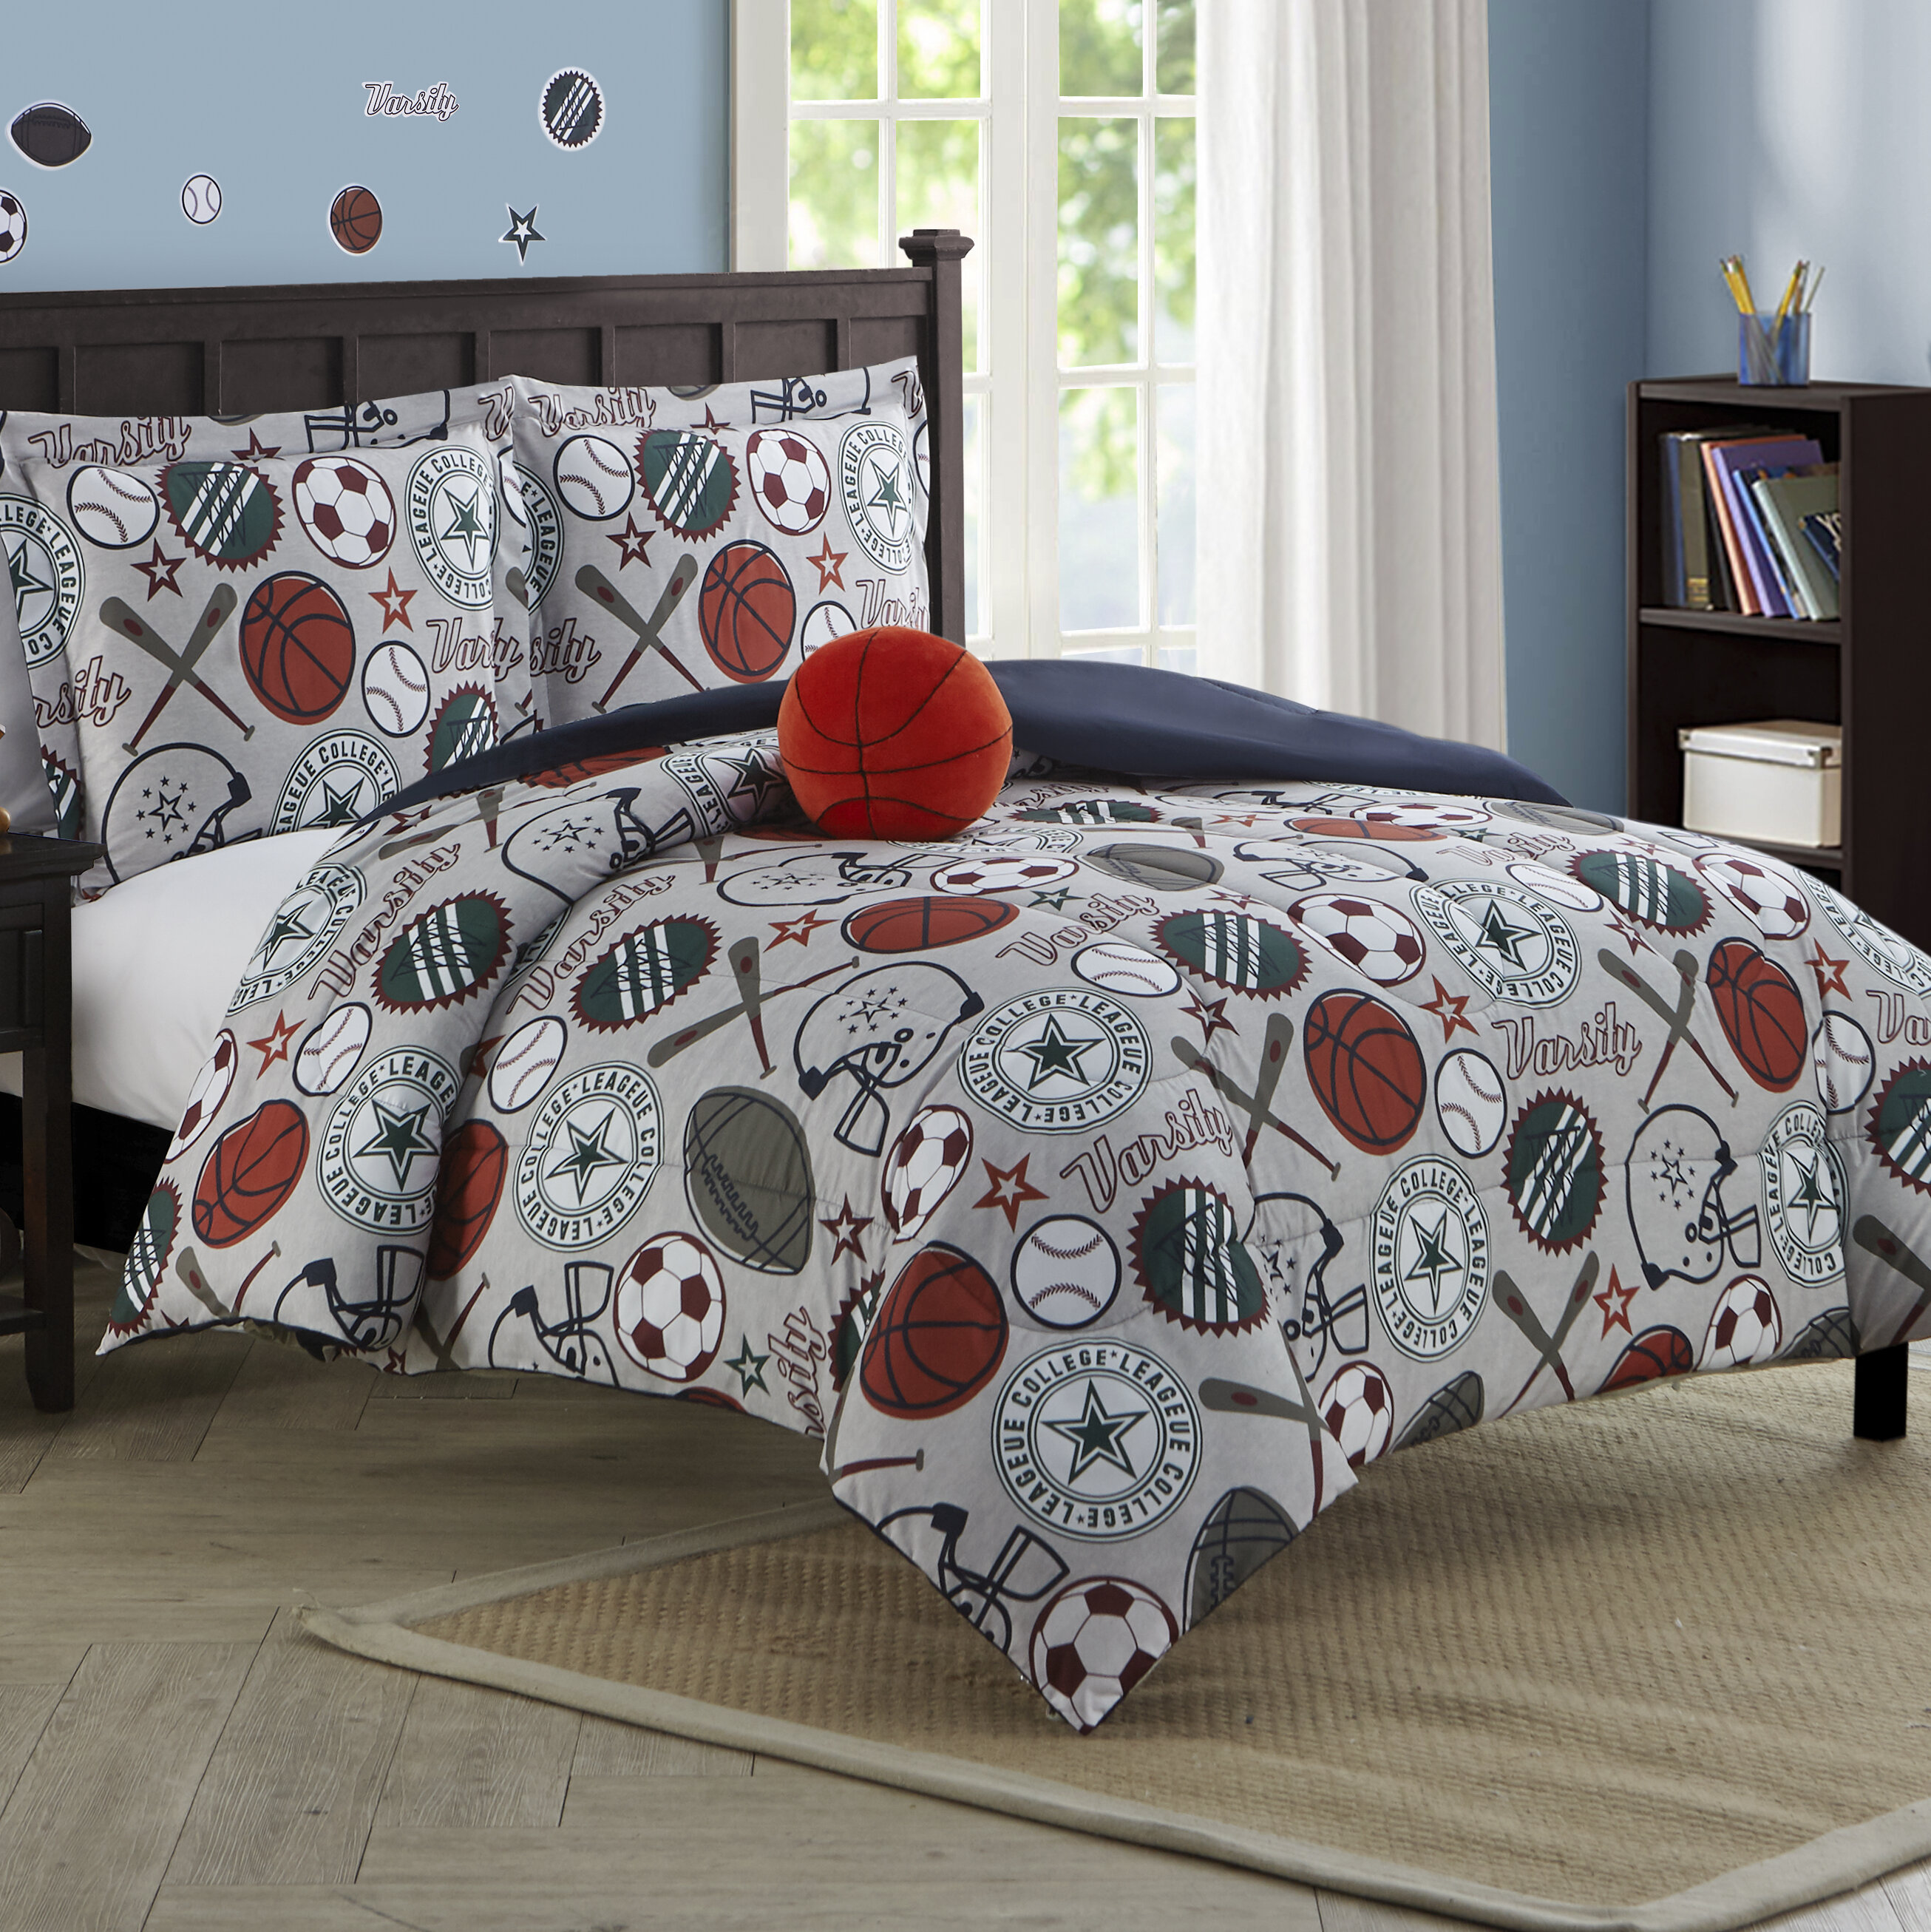 sports boy and sets masculine team football best ideas decor nice trendy full within uncategorized image bedroom of comforters with luxury size on comforter boys bedding for bedspreads